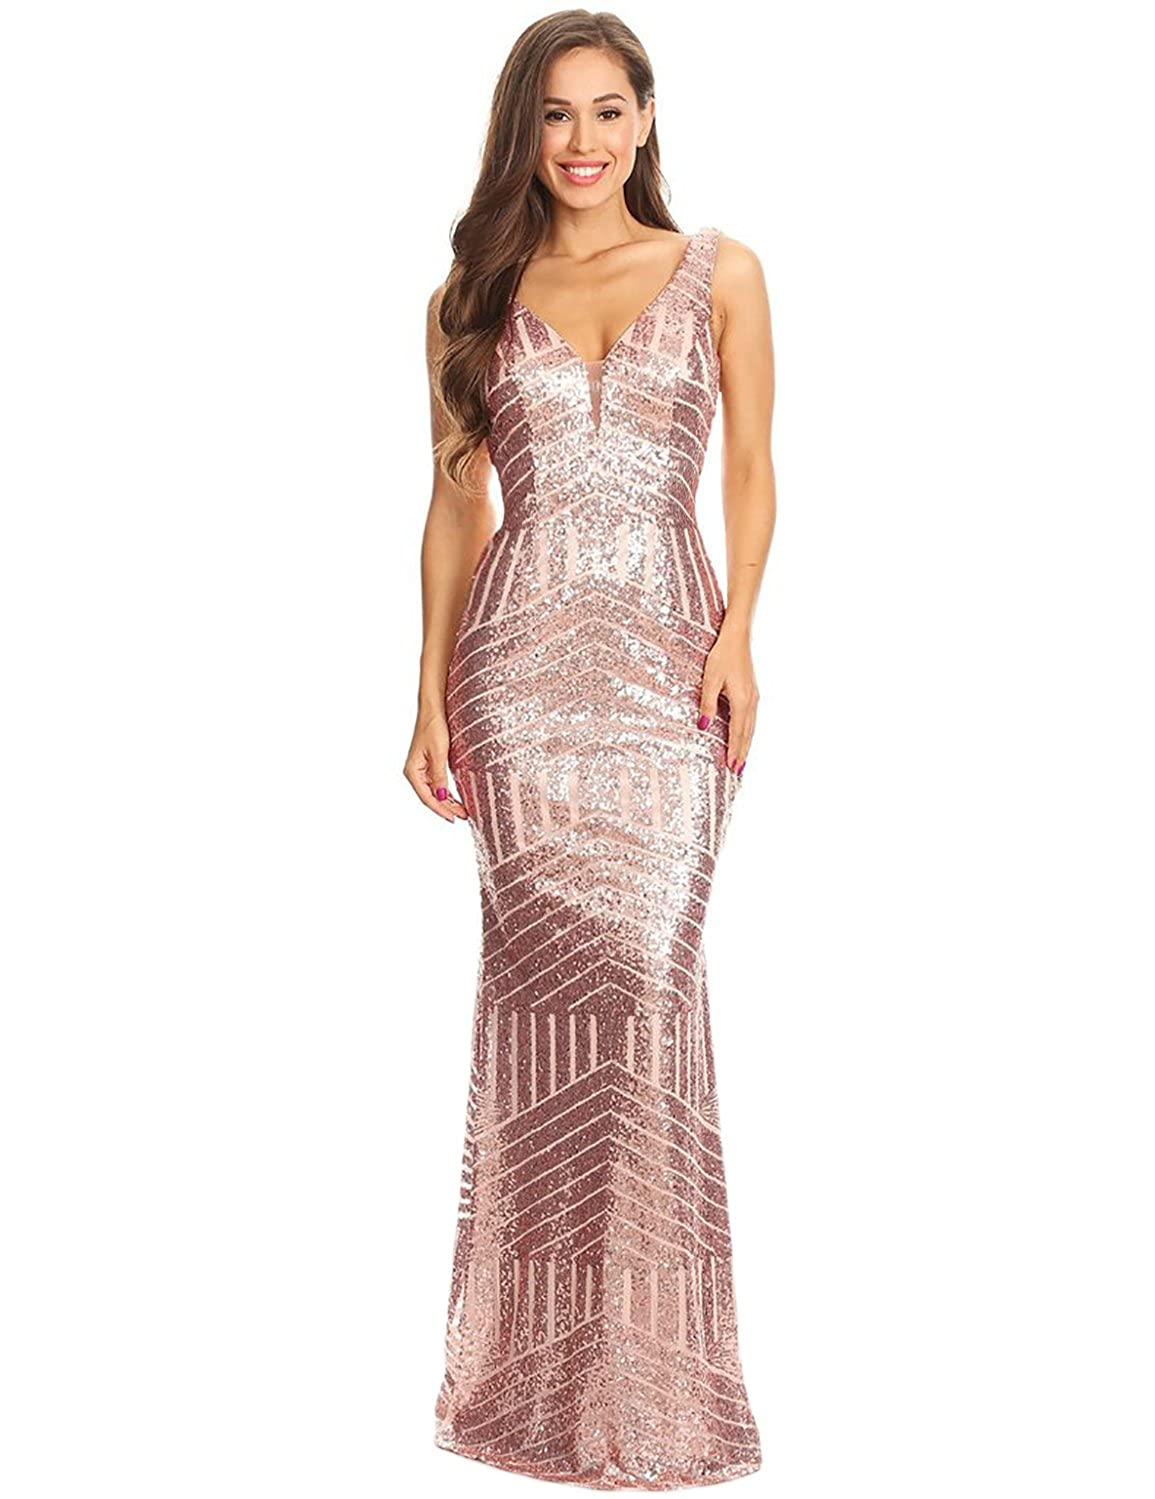 6be52621e18 2018 Women s long sequin mermaid evening dresses sleeveless empire waist prom  gowns for girls. Fitted sheath mermaid dress features v neck and lace up  back ...